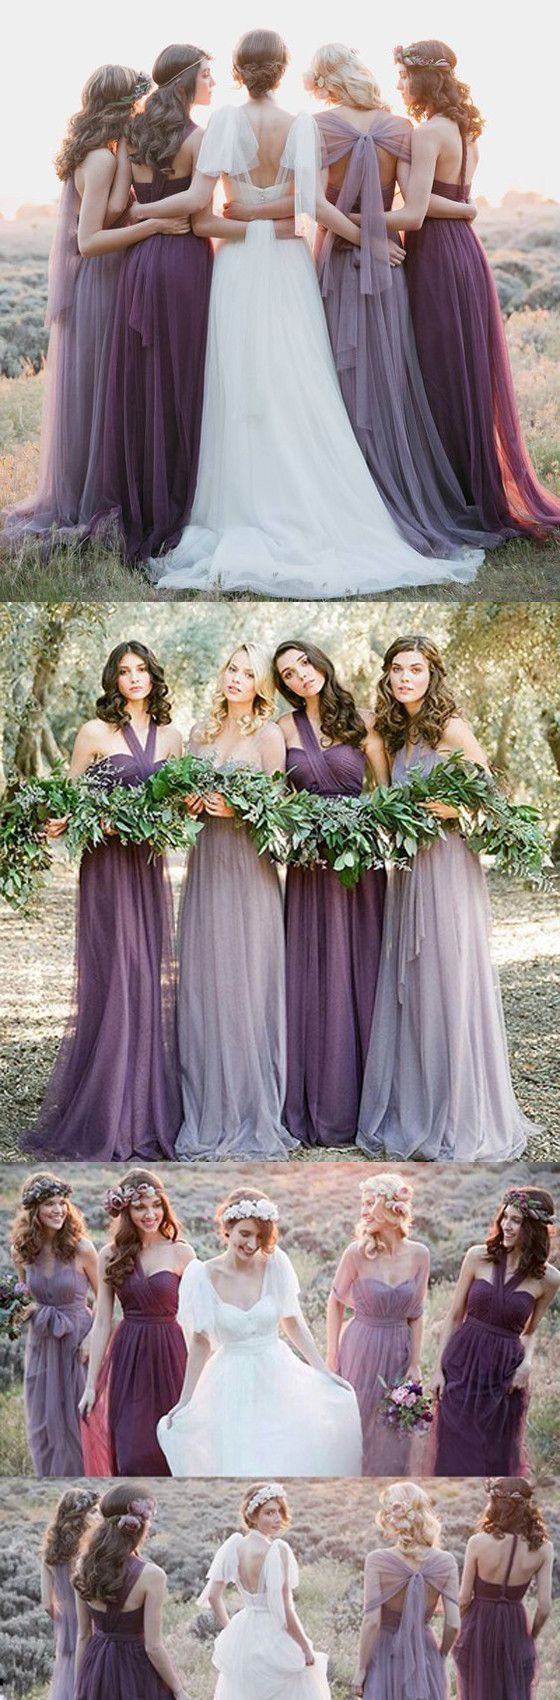 Best 25 christmas bridesmaid dresses ideas on pinterest winter best 25 christmas bridesmaid dresses ideas on pinterest winter wedding bridesmaids long brides maid dresses and burgundy bridesmaid ombrellifo Choice Image